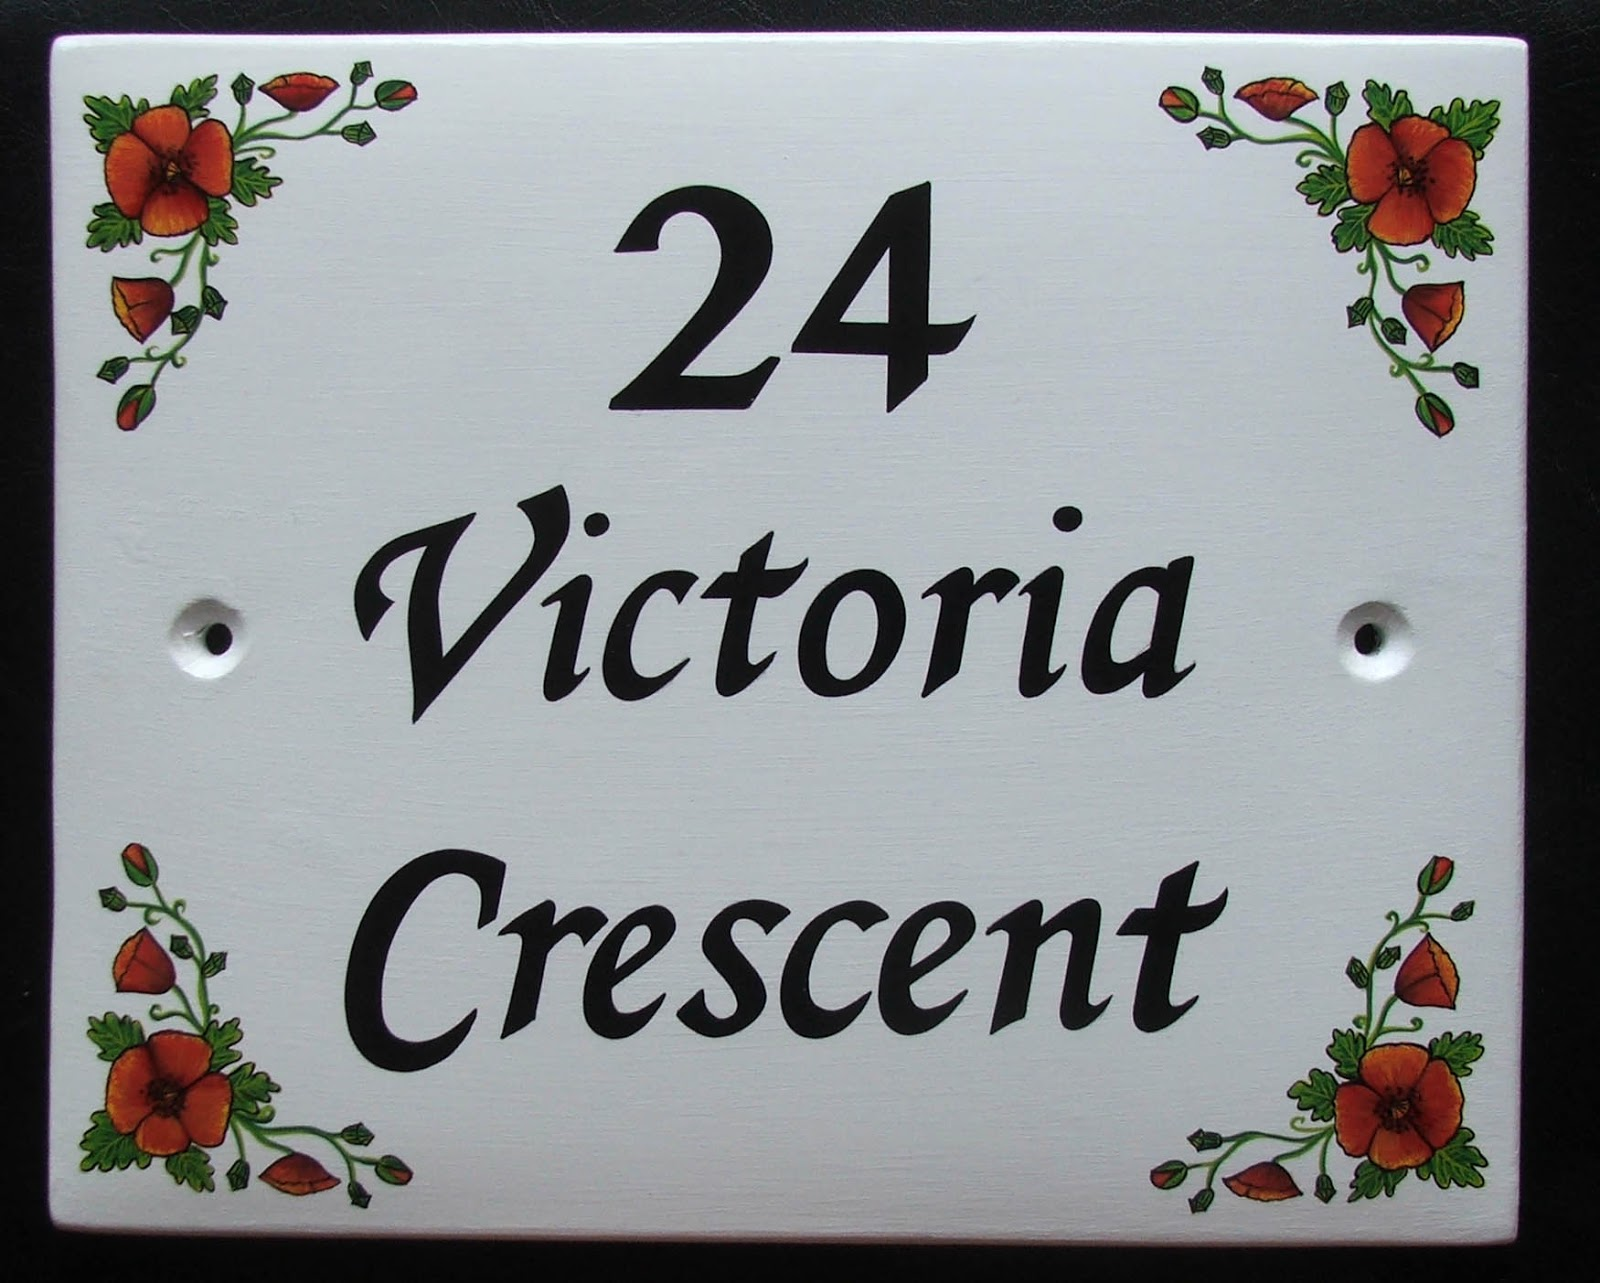 Ceramic House Name Plates - Architectural Designs